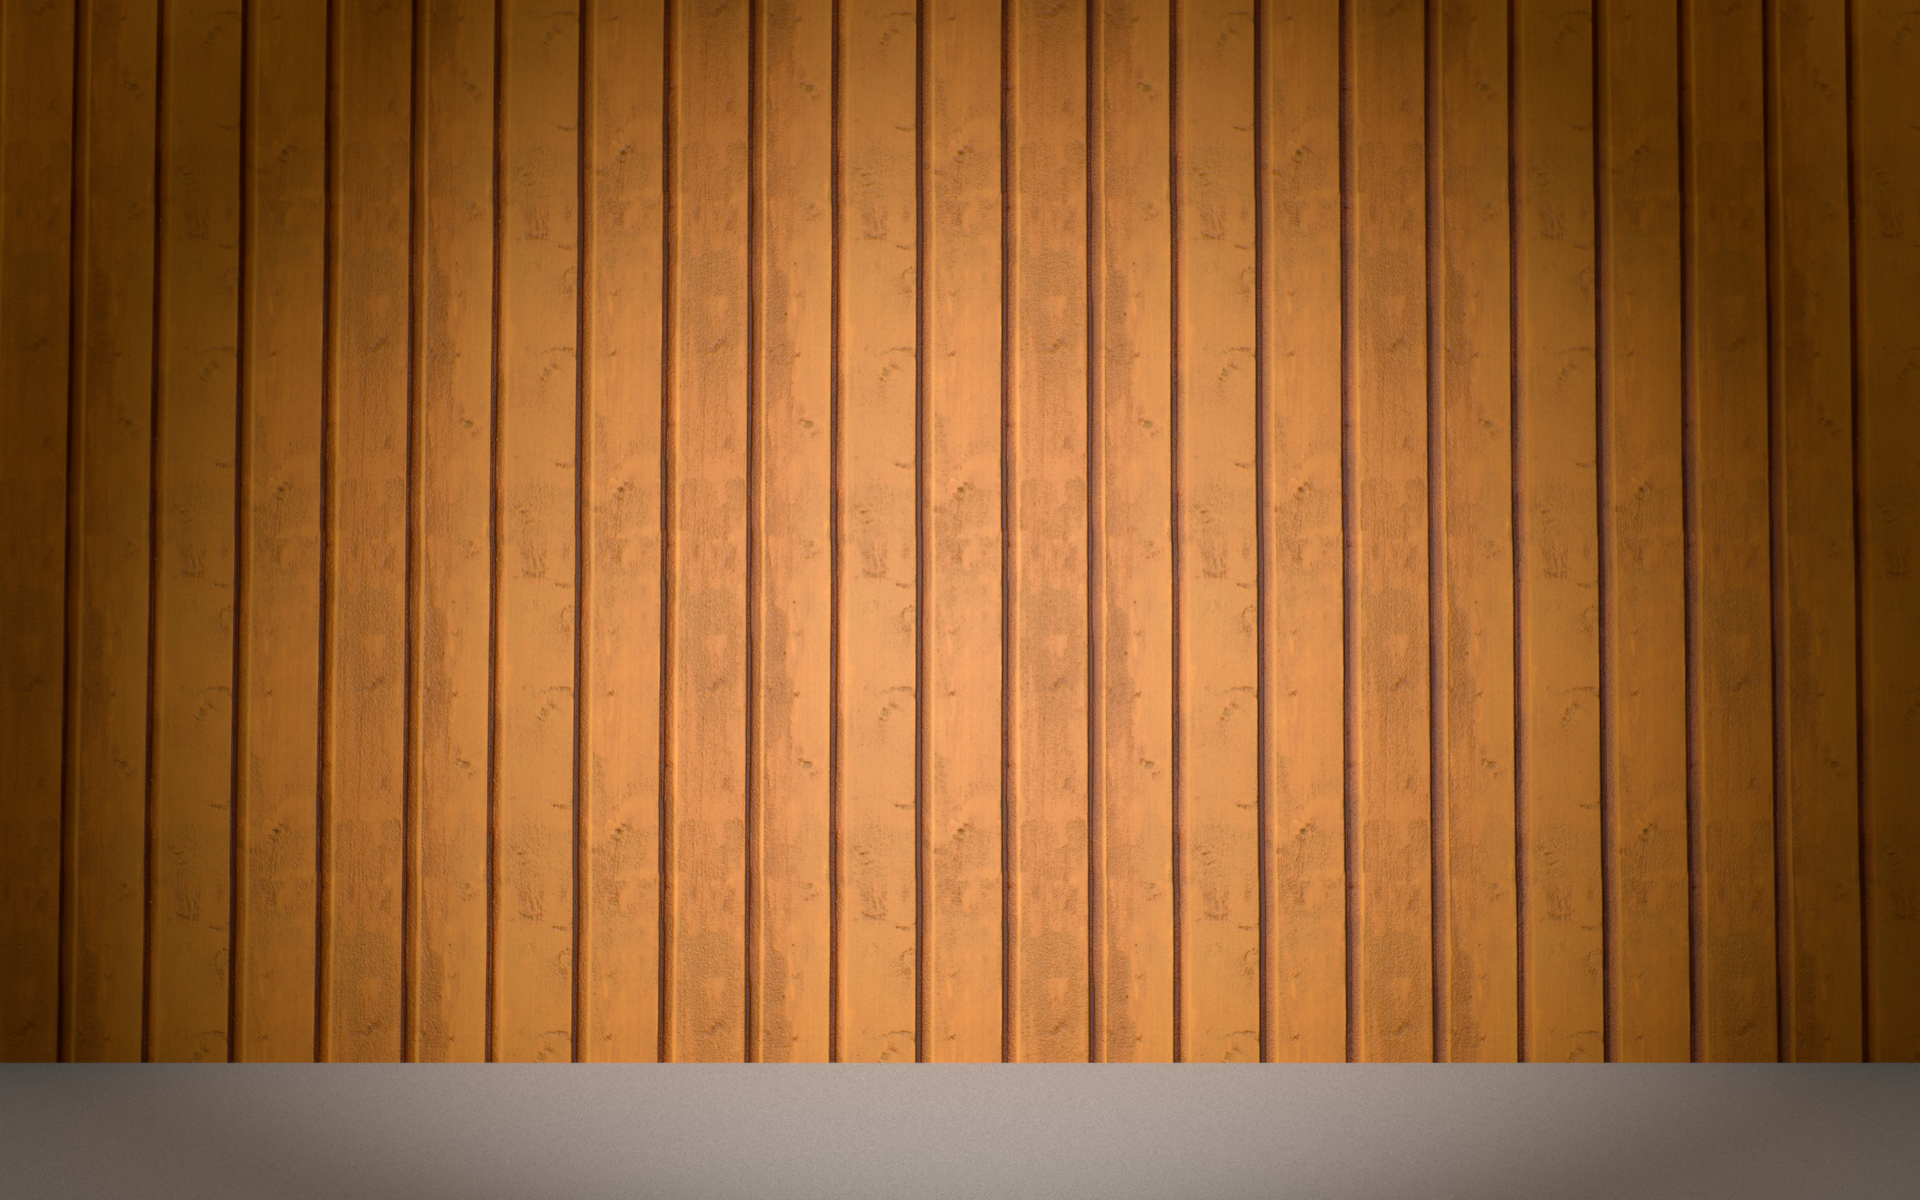 clipart library library Free cliparts download clip. Wood wall clipart.